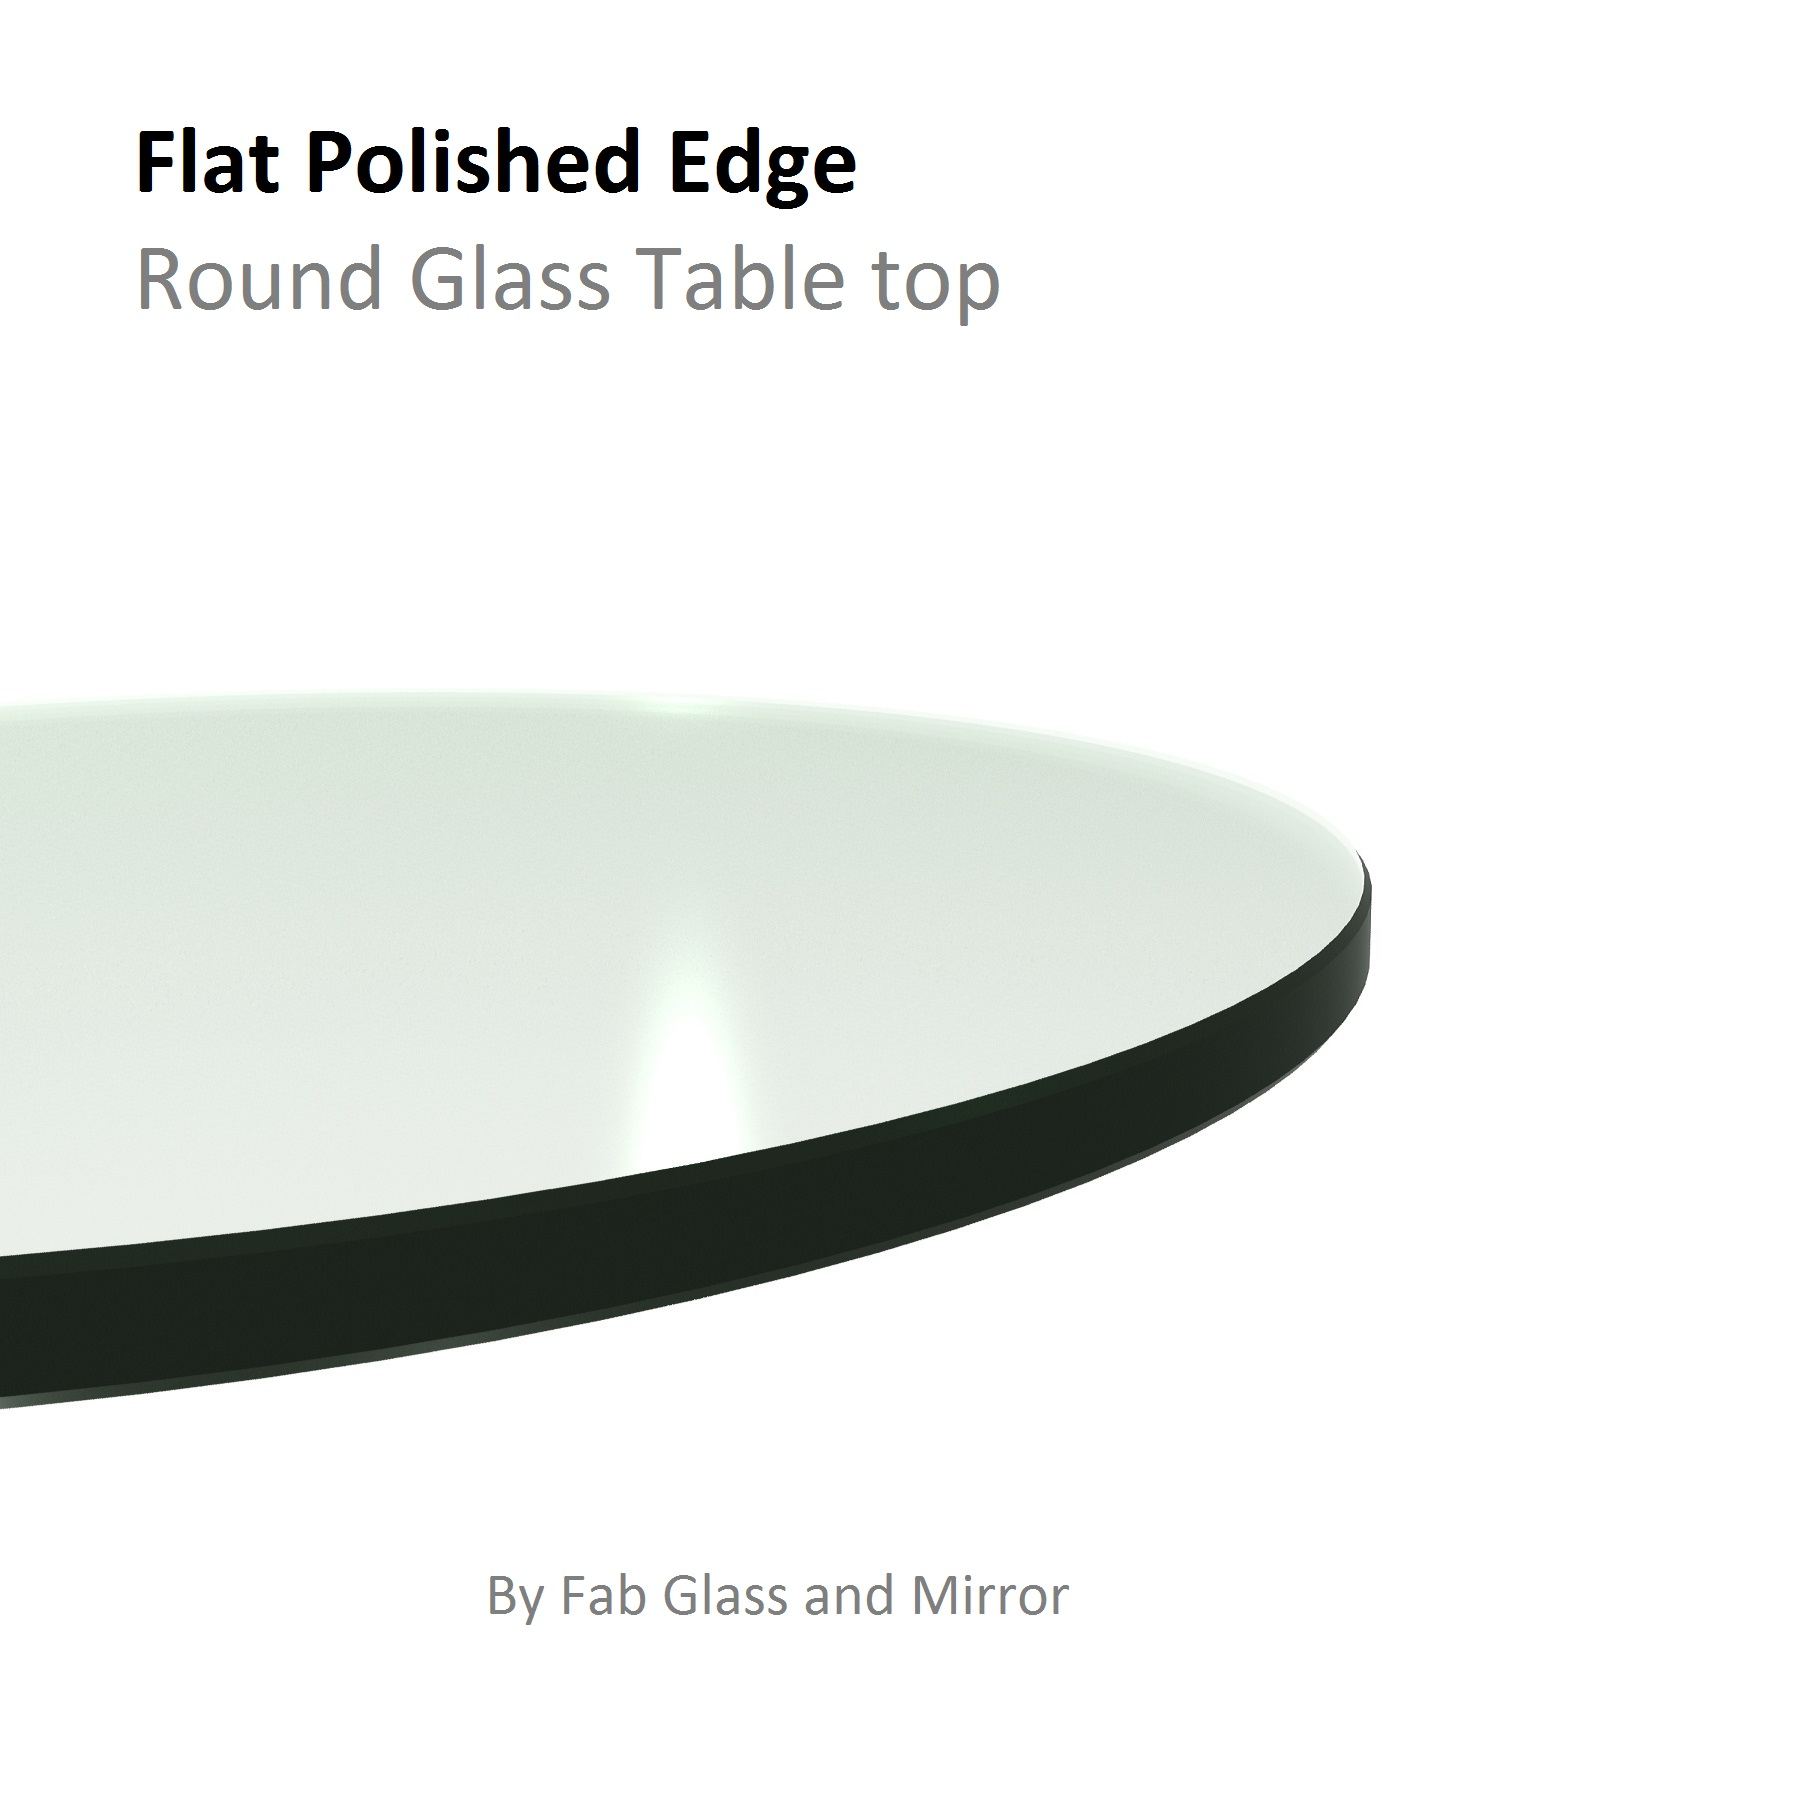 Fab Glass And Mirror Round Clear Glass Table Top With Flat Polish